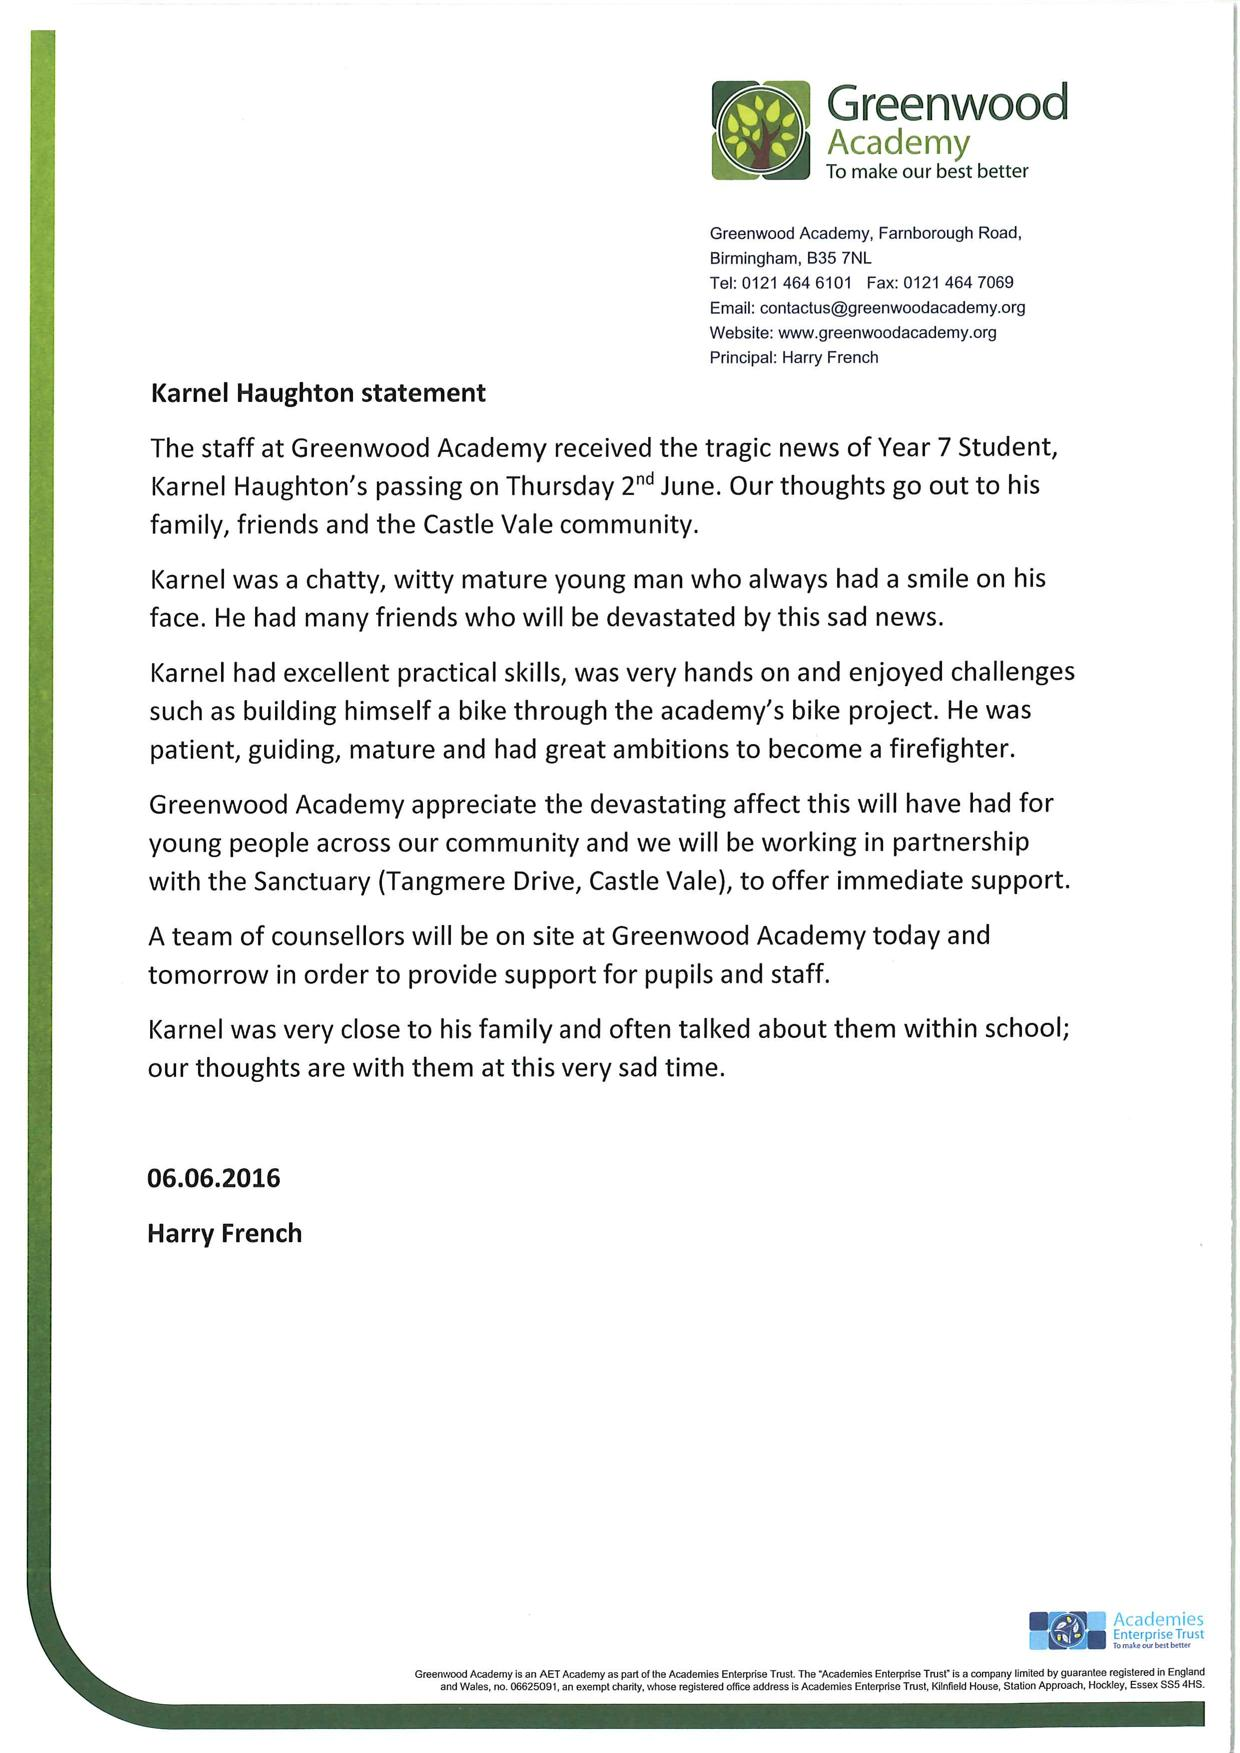 Karnel Haughton school statement